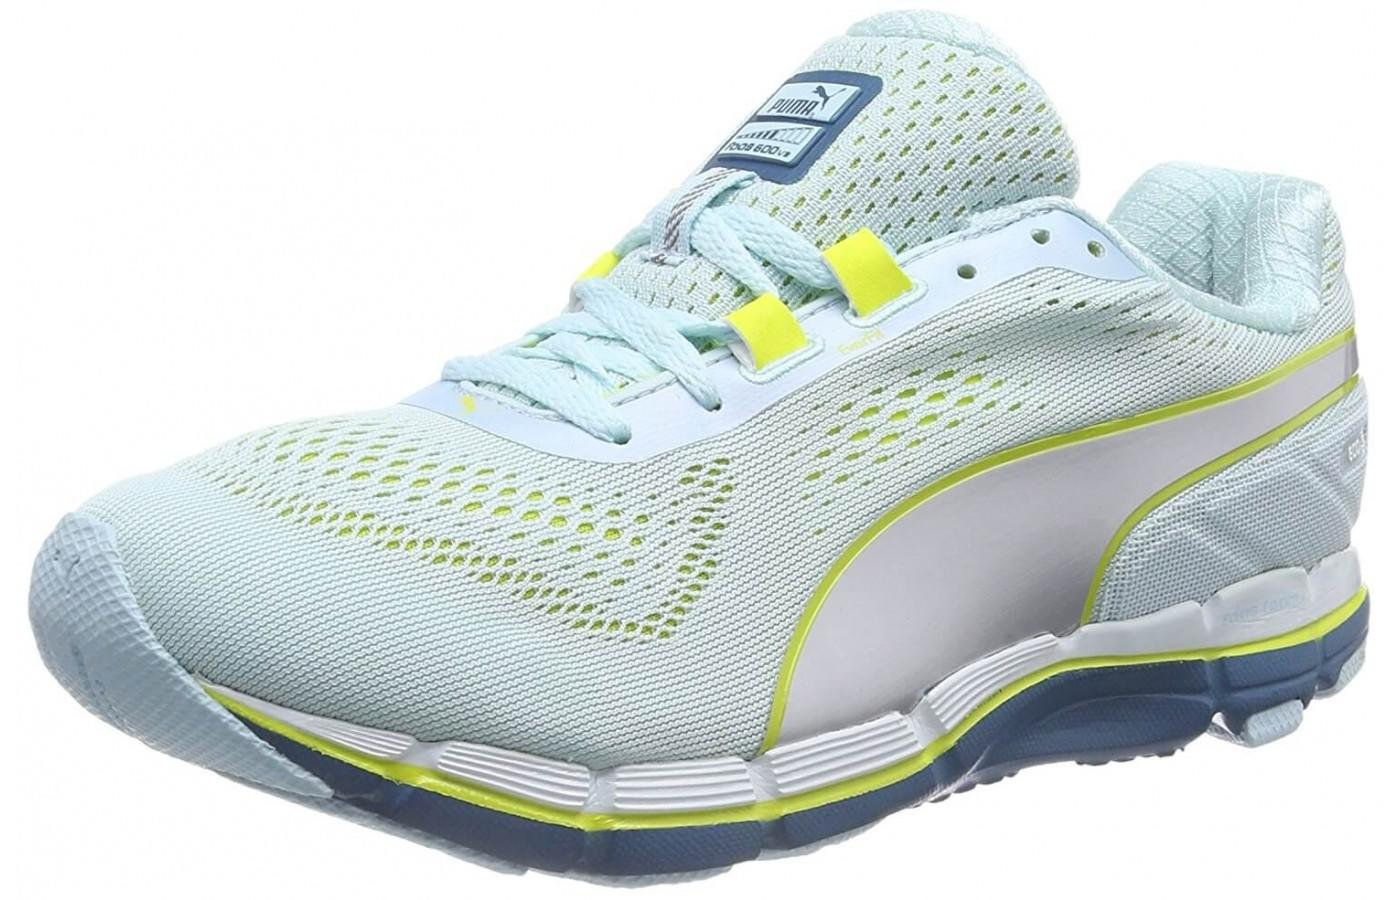 The Puma Faas 600 v3 reviewed and compared